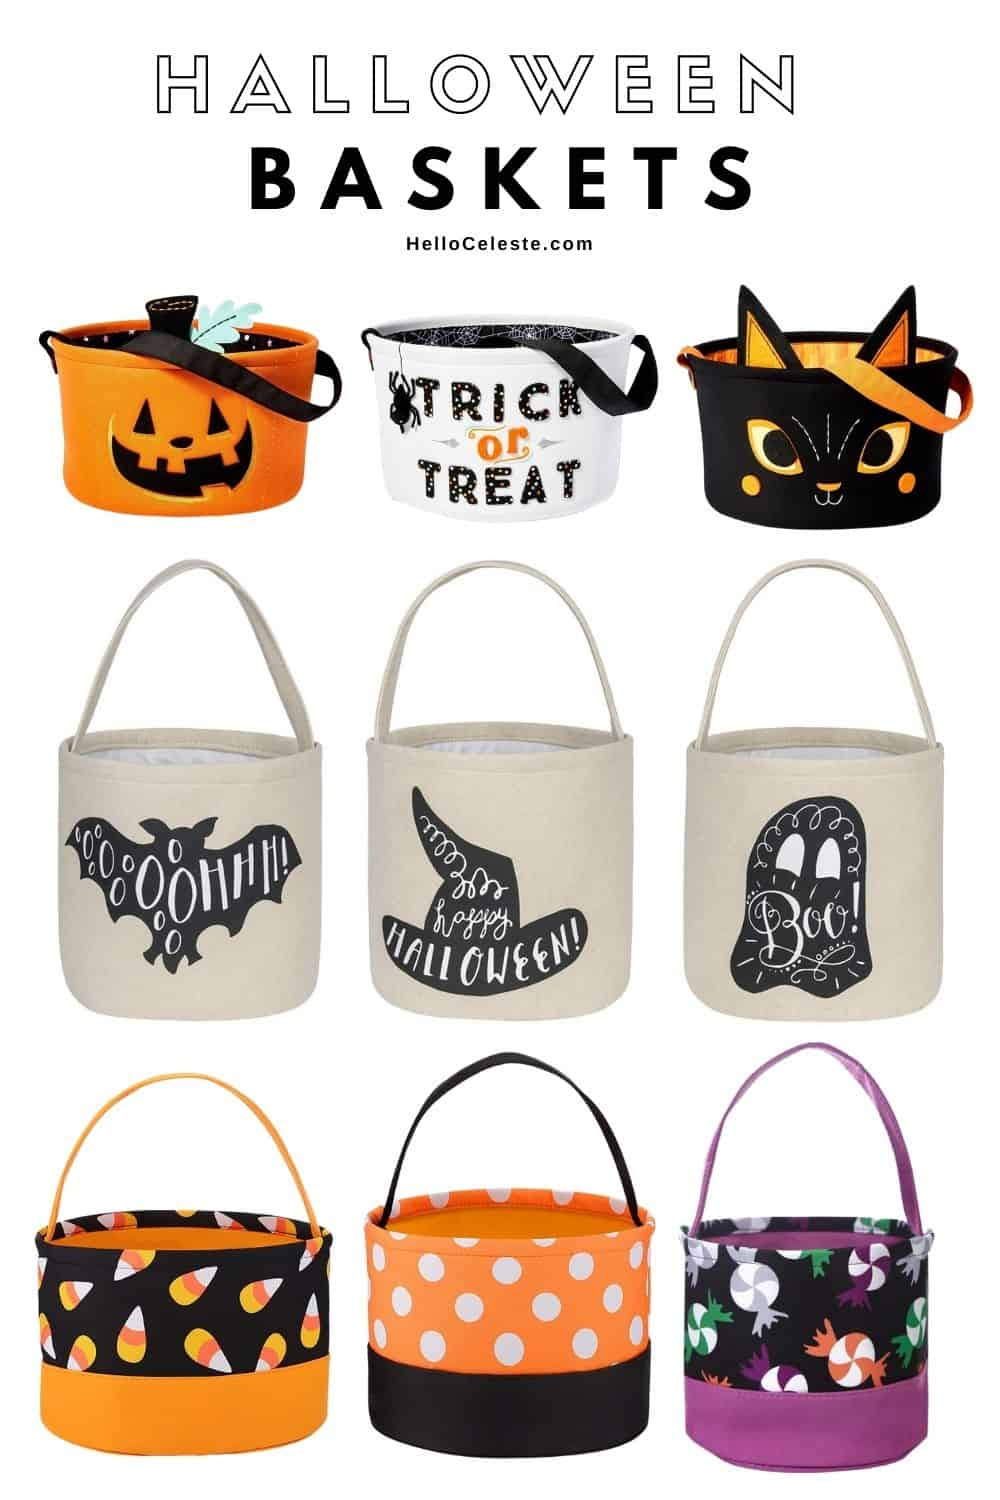 Halloween Baskets